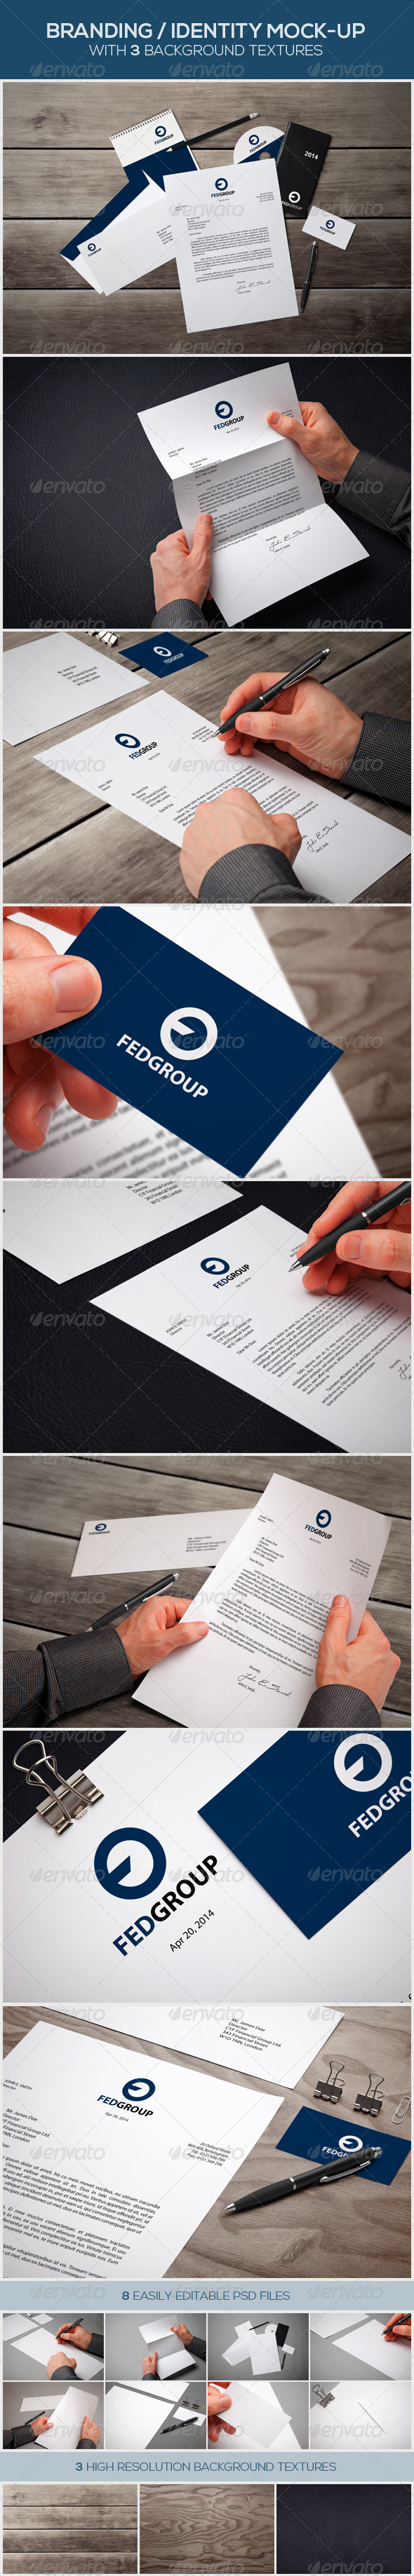 GraphicRiver 8 Branding Identity Mock-ups with 3 Textures 7546653